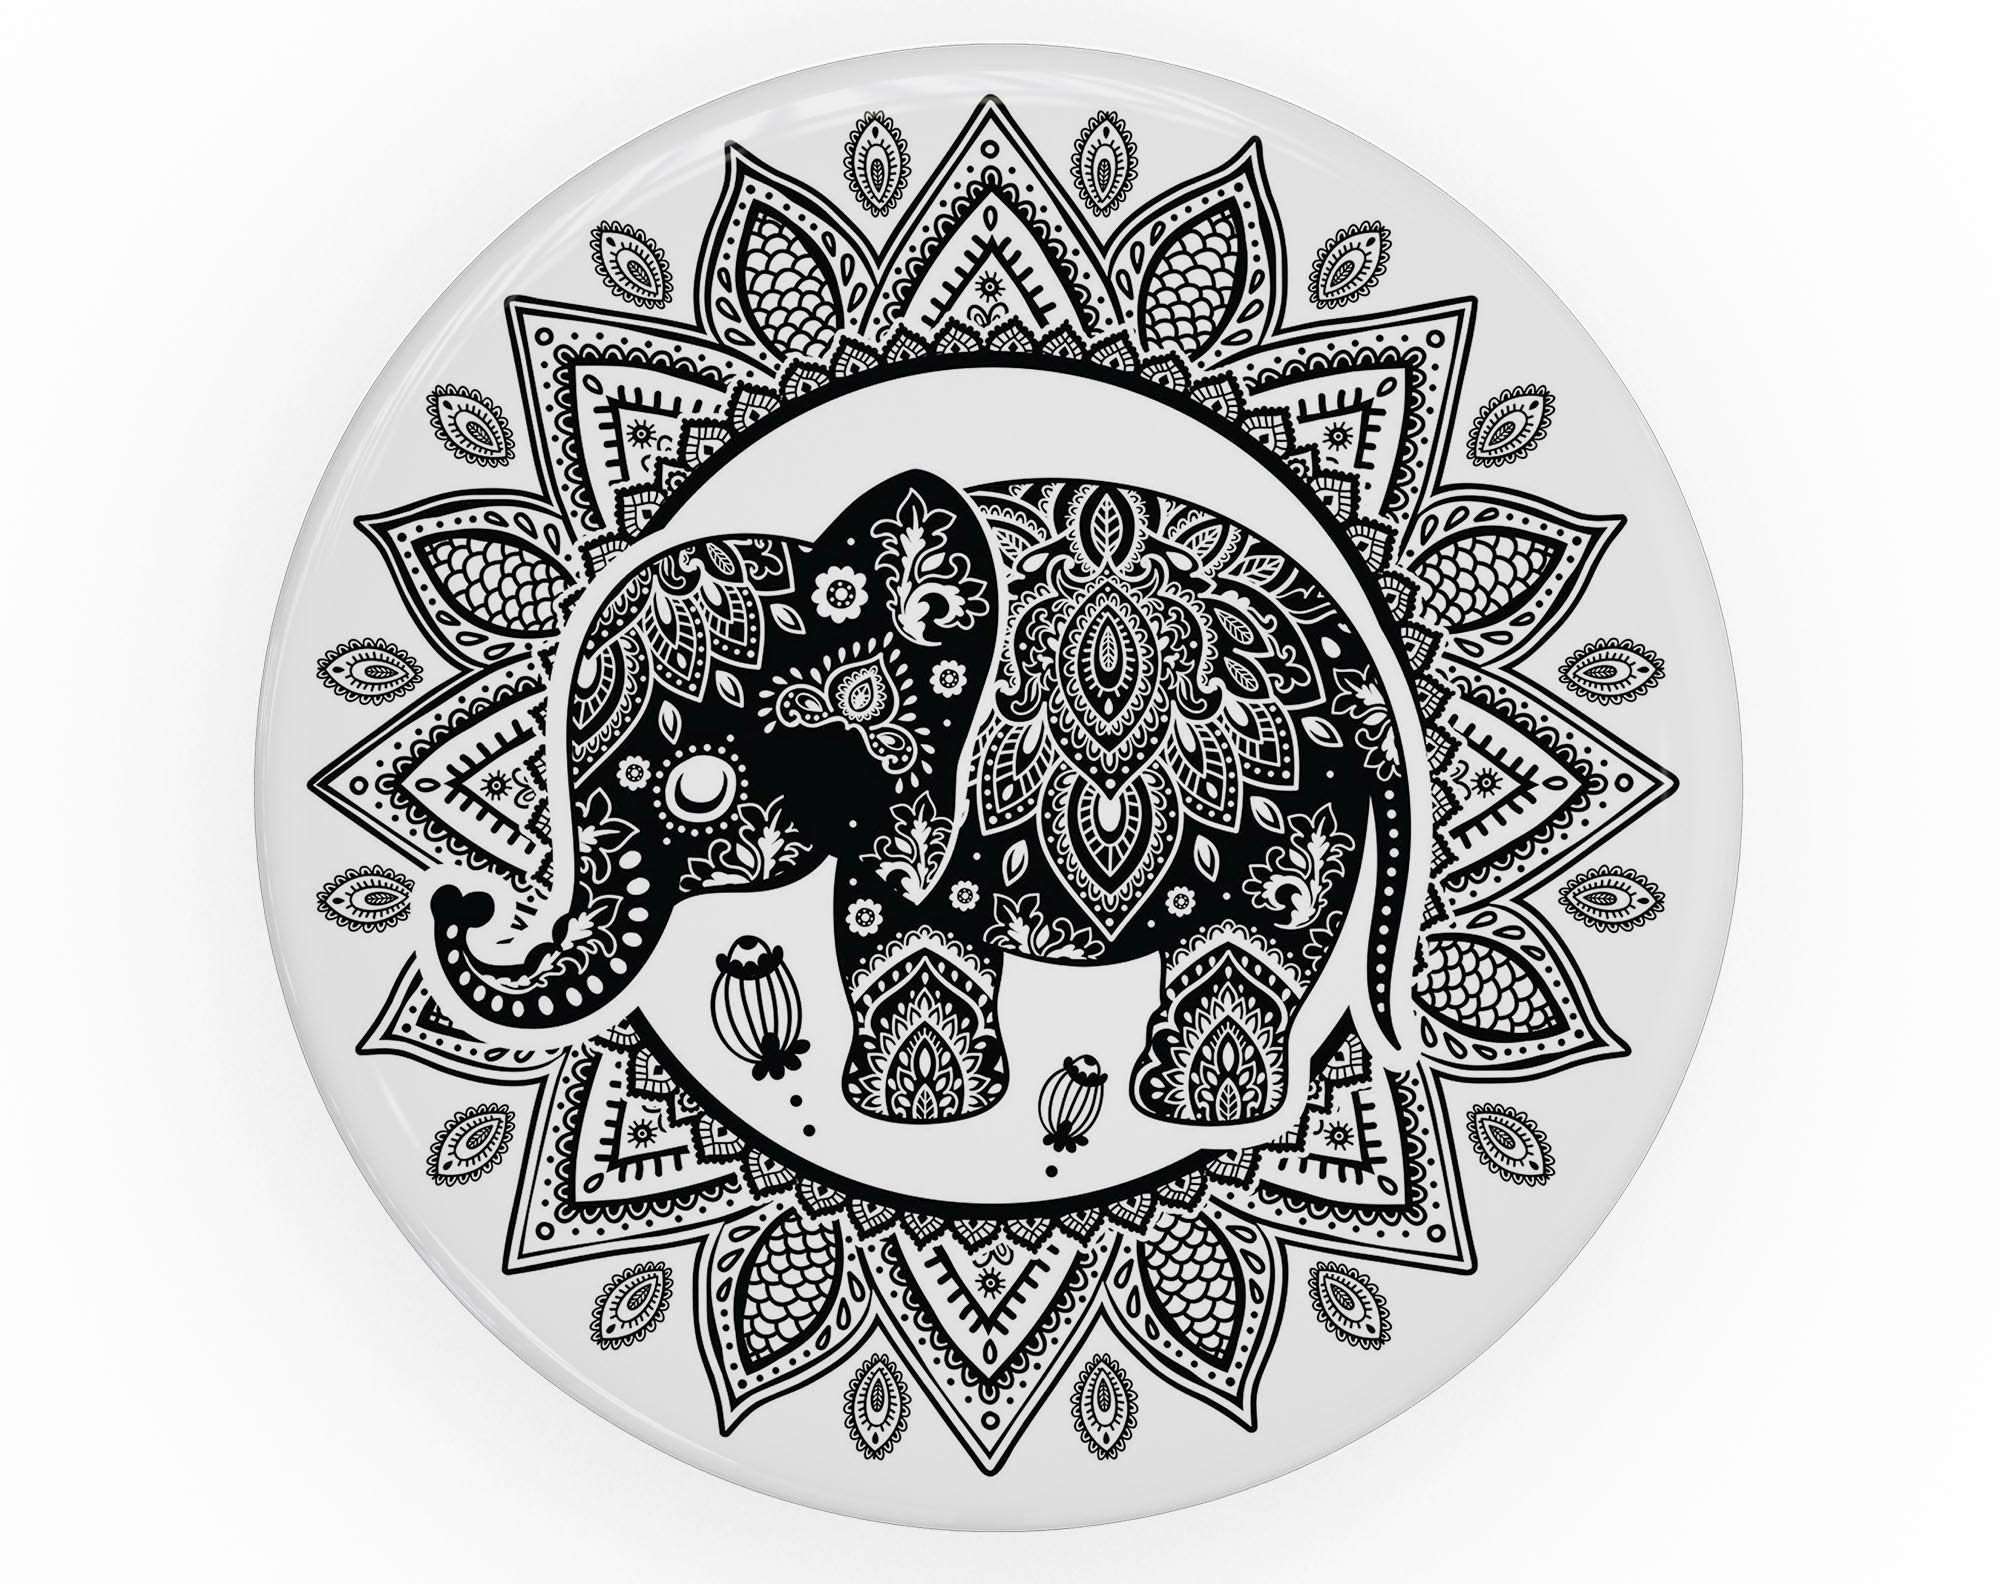 Indian Mandala Elephant - DesignSkinz Premium Decal Sticker Skin-Kit for PopSockets Smartphone Extendable Grip & Stand by iiRov (Image #6)